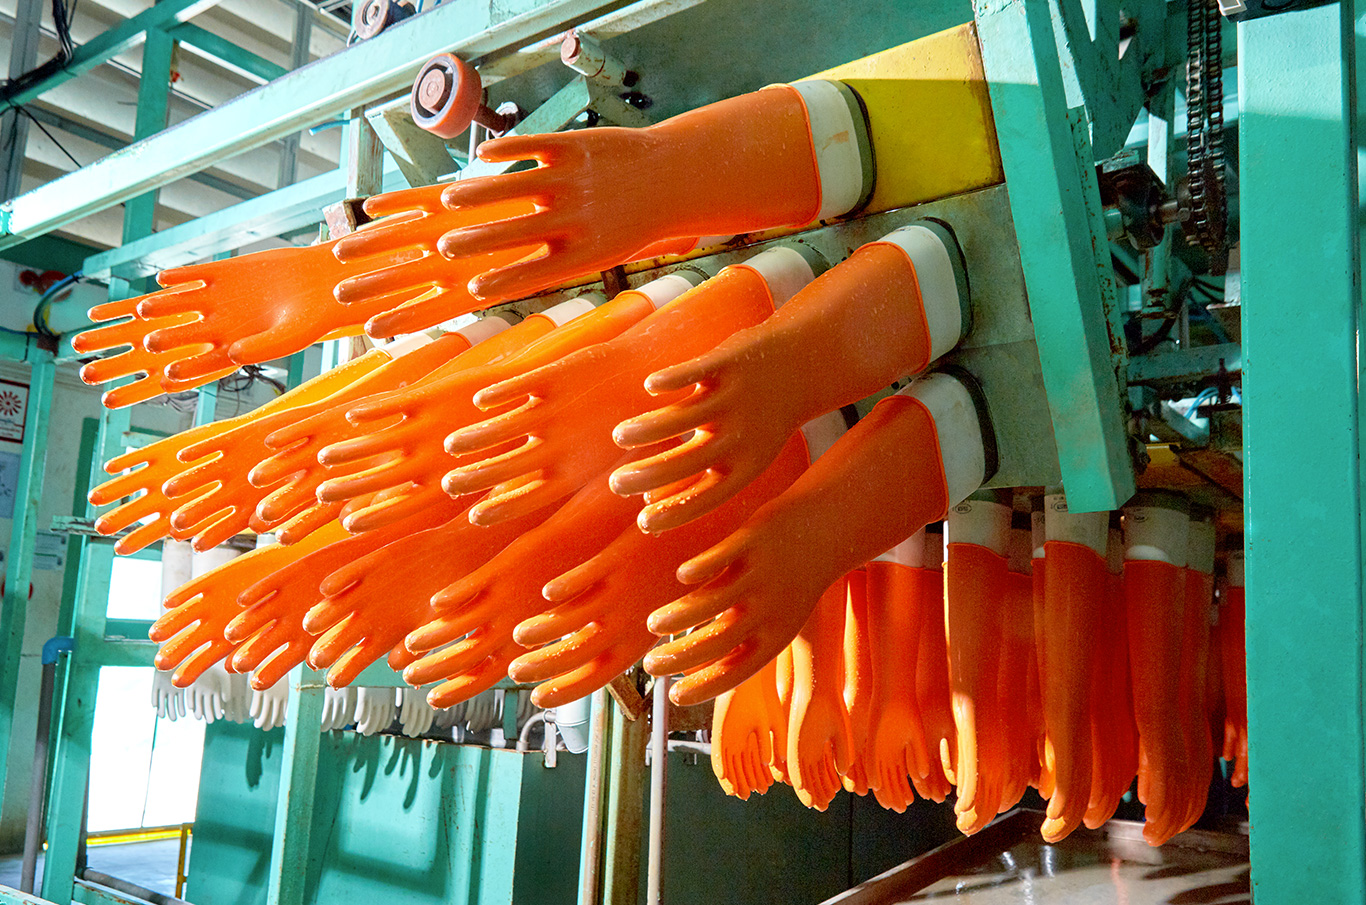 gloves manufacturing lines, gloves lines, glove auto stripping machine, glove packaging lines, gloves continuous production lines, gloves batch production lines, conveyor belts, biomass boilers, modern design, เครื่องจักรผลิตถุงมือ, เครื่องจักรผลิตแบบต่อเนื่อง, เครื่องจักรผลิตแบบ batch, เครื่องถอดถุงมืออัตโนมัติ, แม่พิมพ์ถุงมือ, เครื่องจักรแบบโซ่